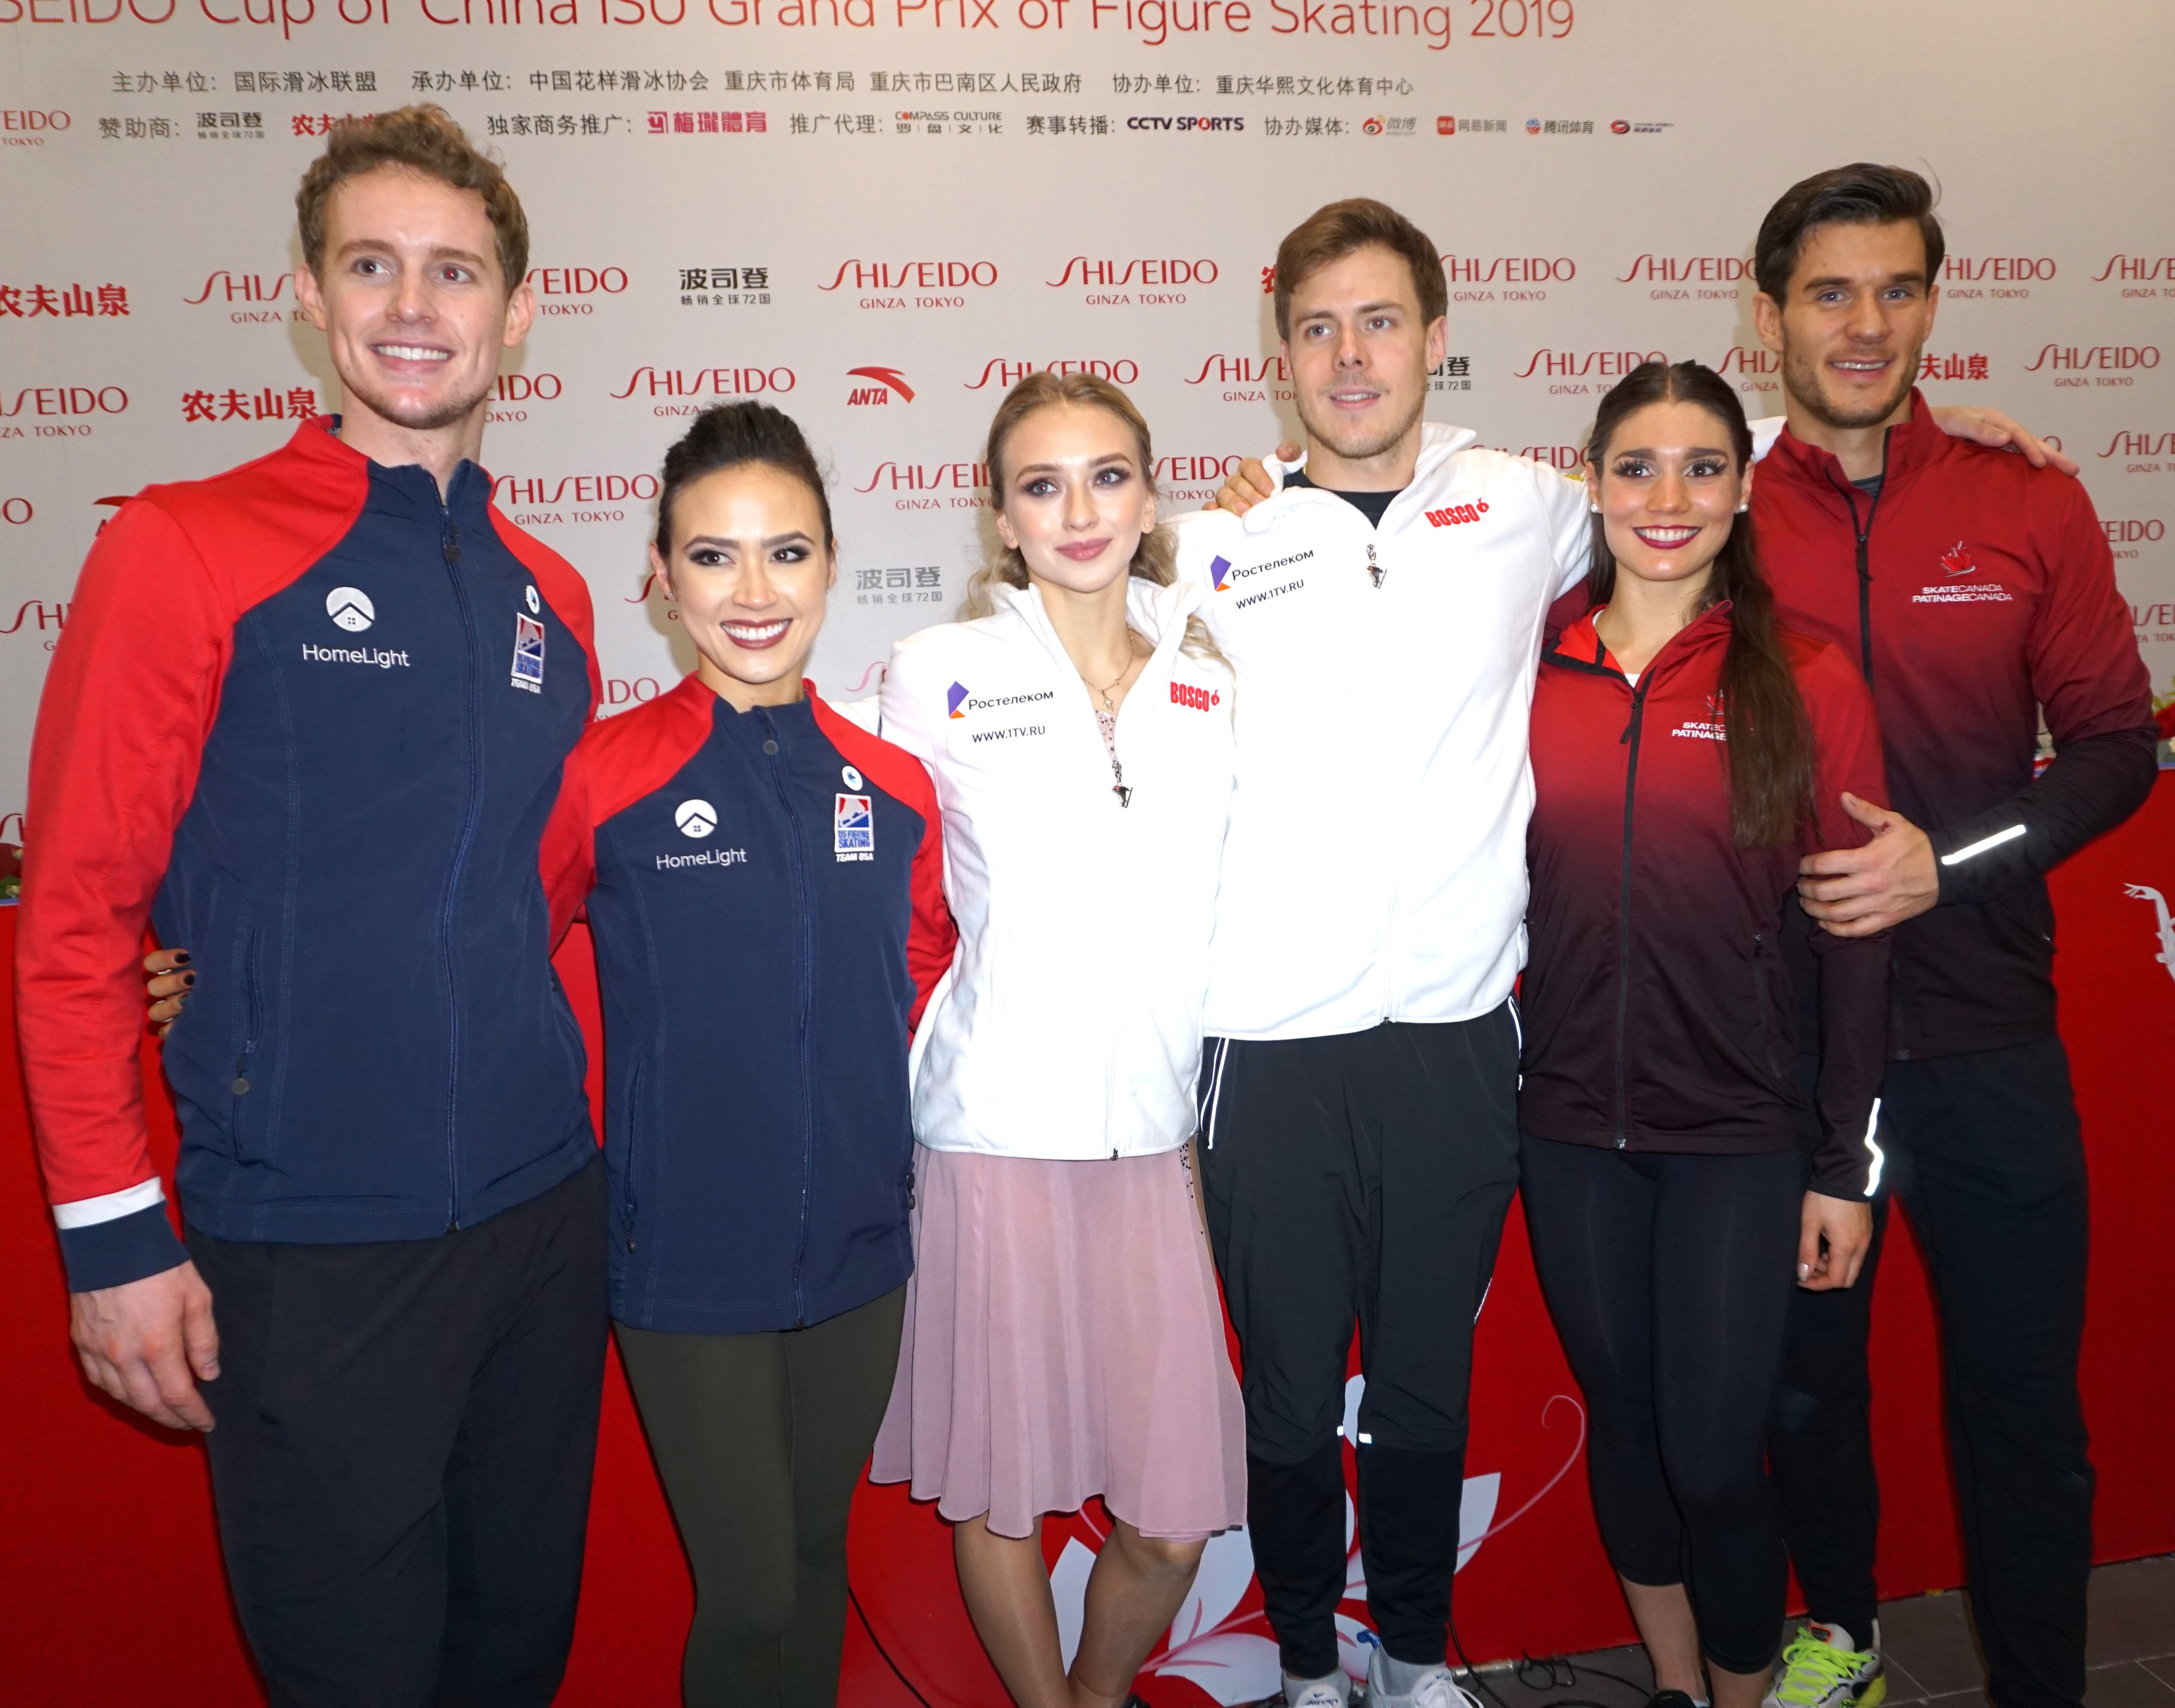 GP - 4 этап. Cup of China Chongqing / CHN November 8-10, 2019 - Страница 12 EI9qo_jWkAEfzVi?format=jpg&name=4096x4096